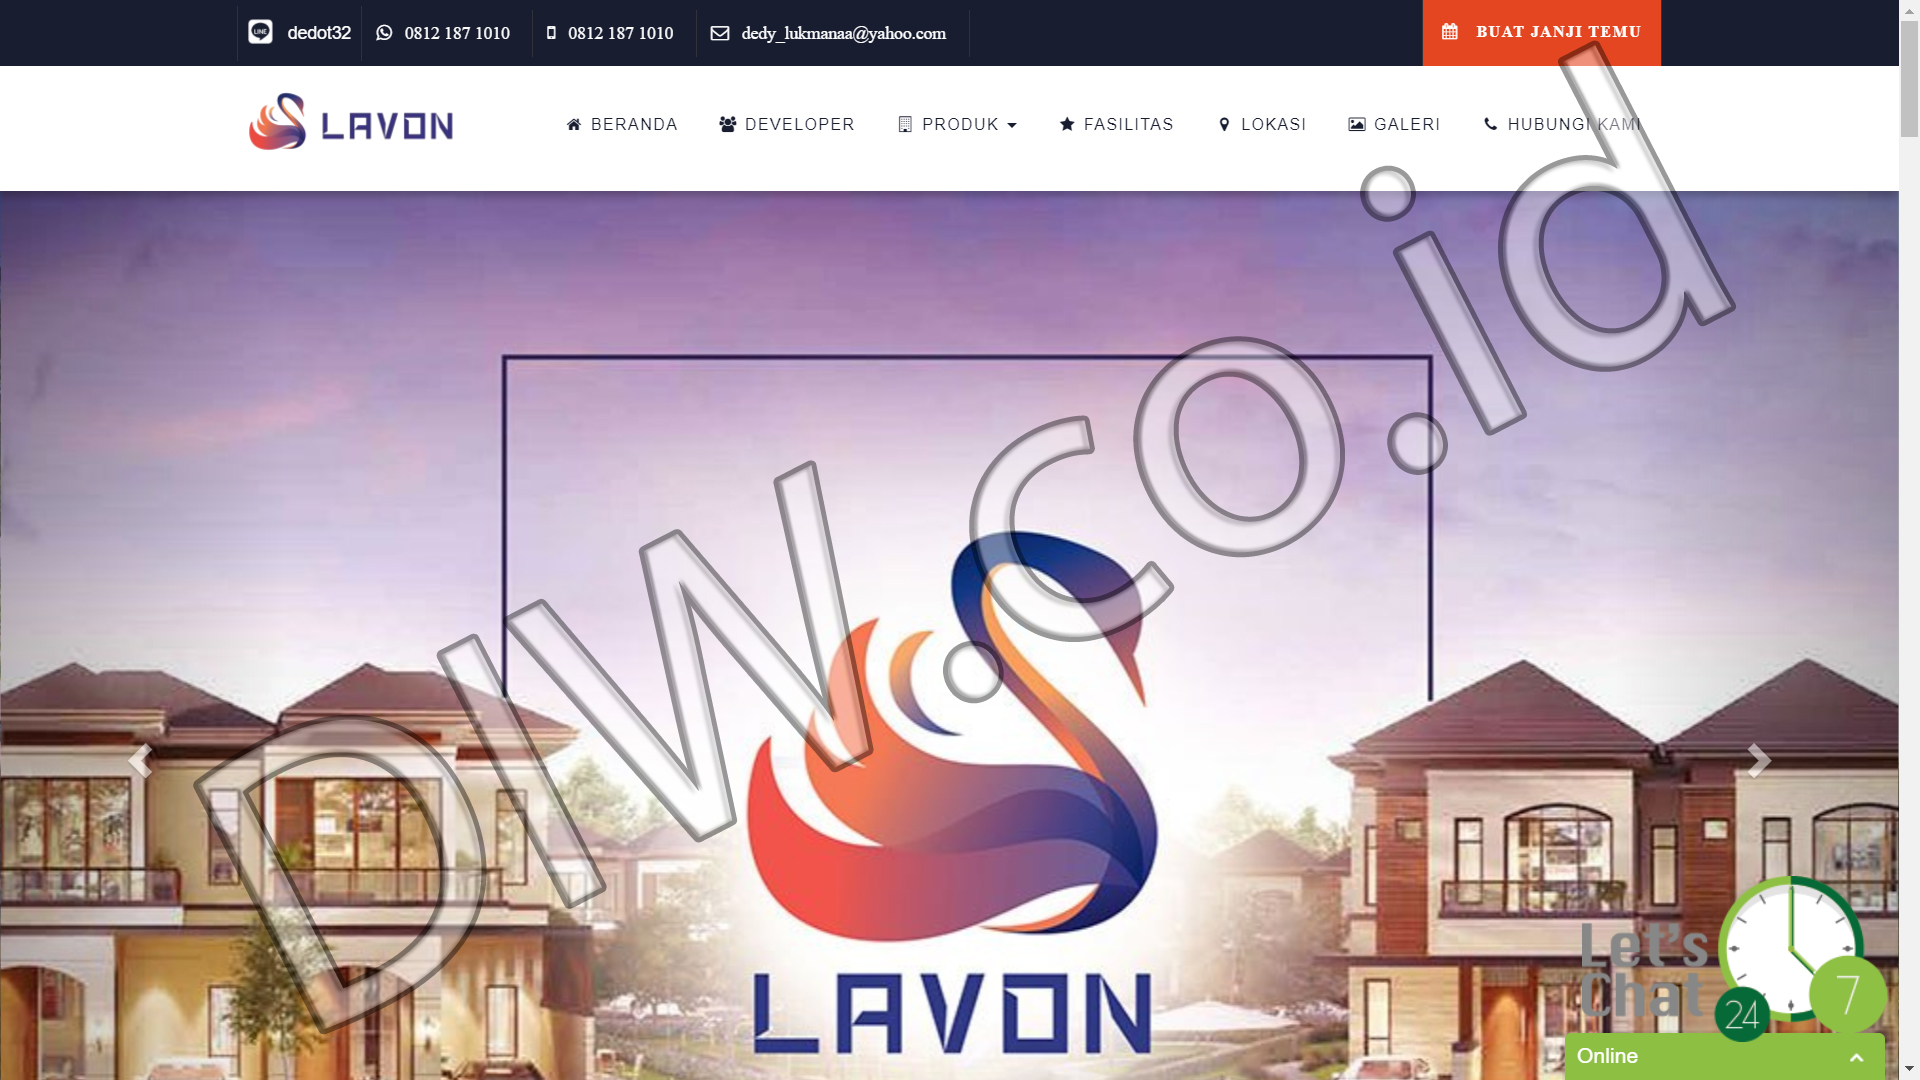 Portfolio 1 - Lavon New City - Andri Sunardi - Freelancer - Web Developer - CEO DIW.co.id